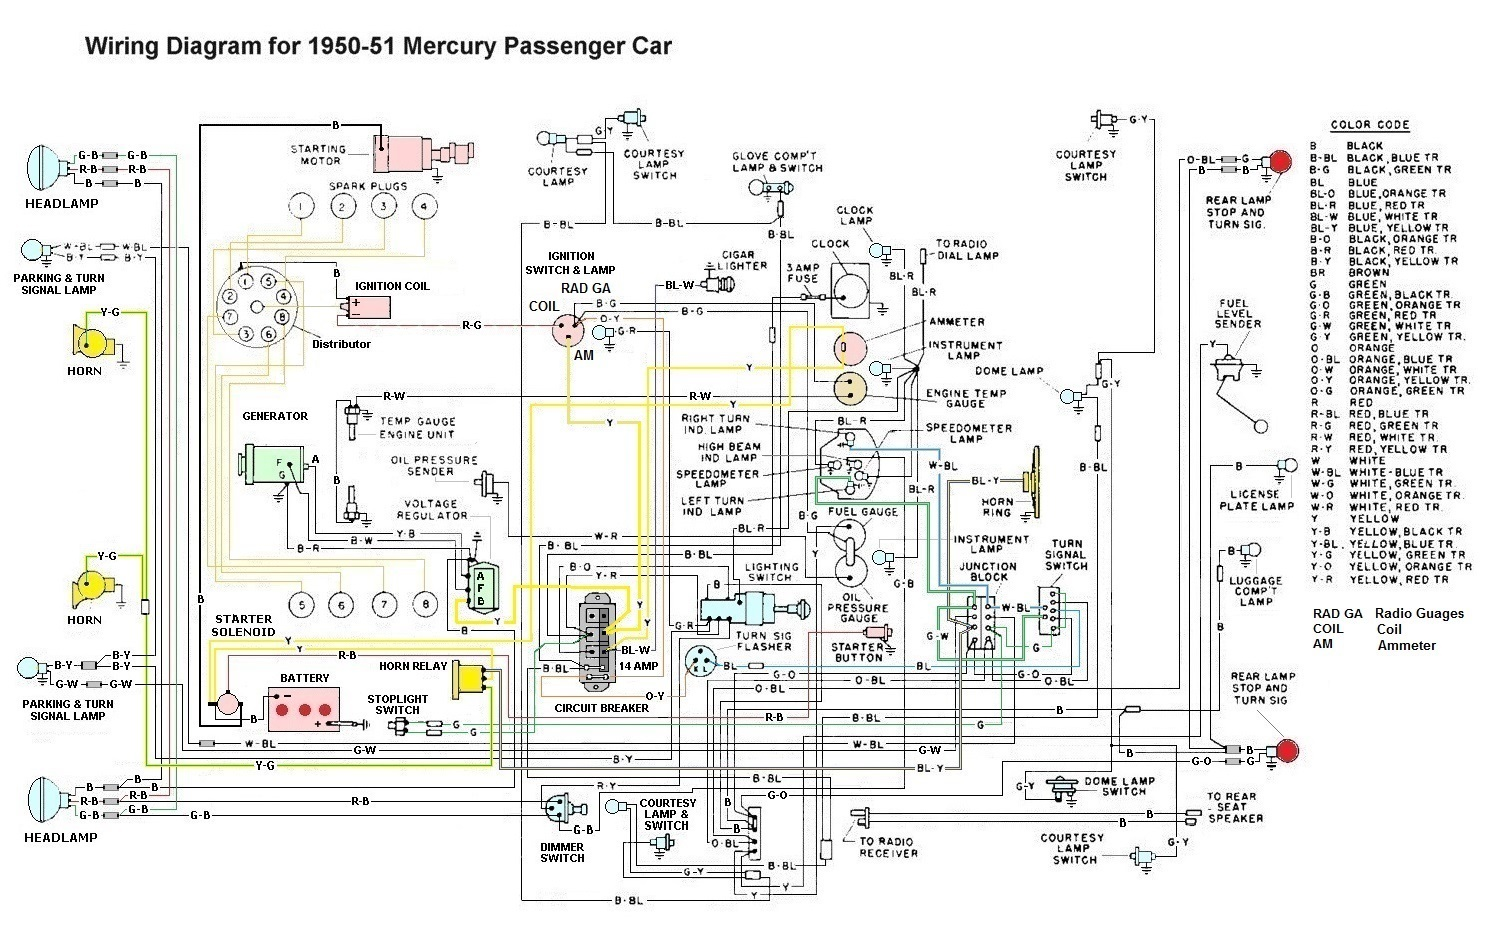 1951 Mercury Electrical And Mechanical 1950 American Motors Wiring Diagram Still Six Volts With A Positive Ground